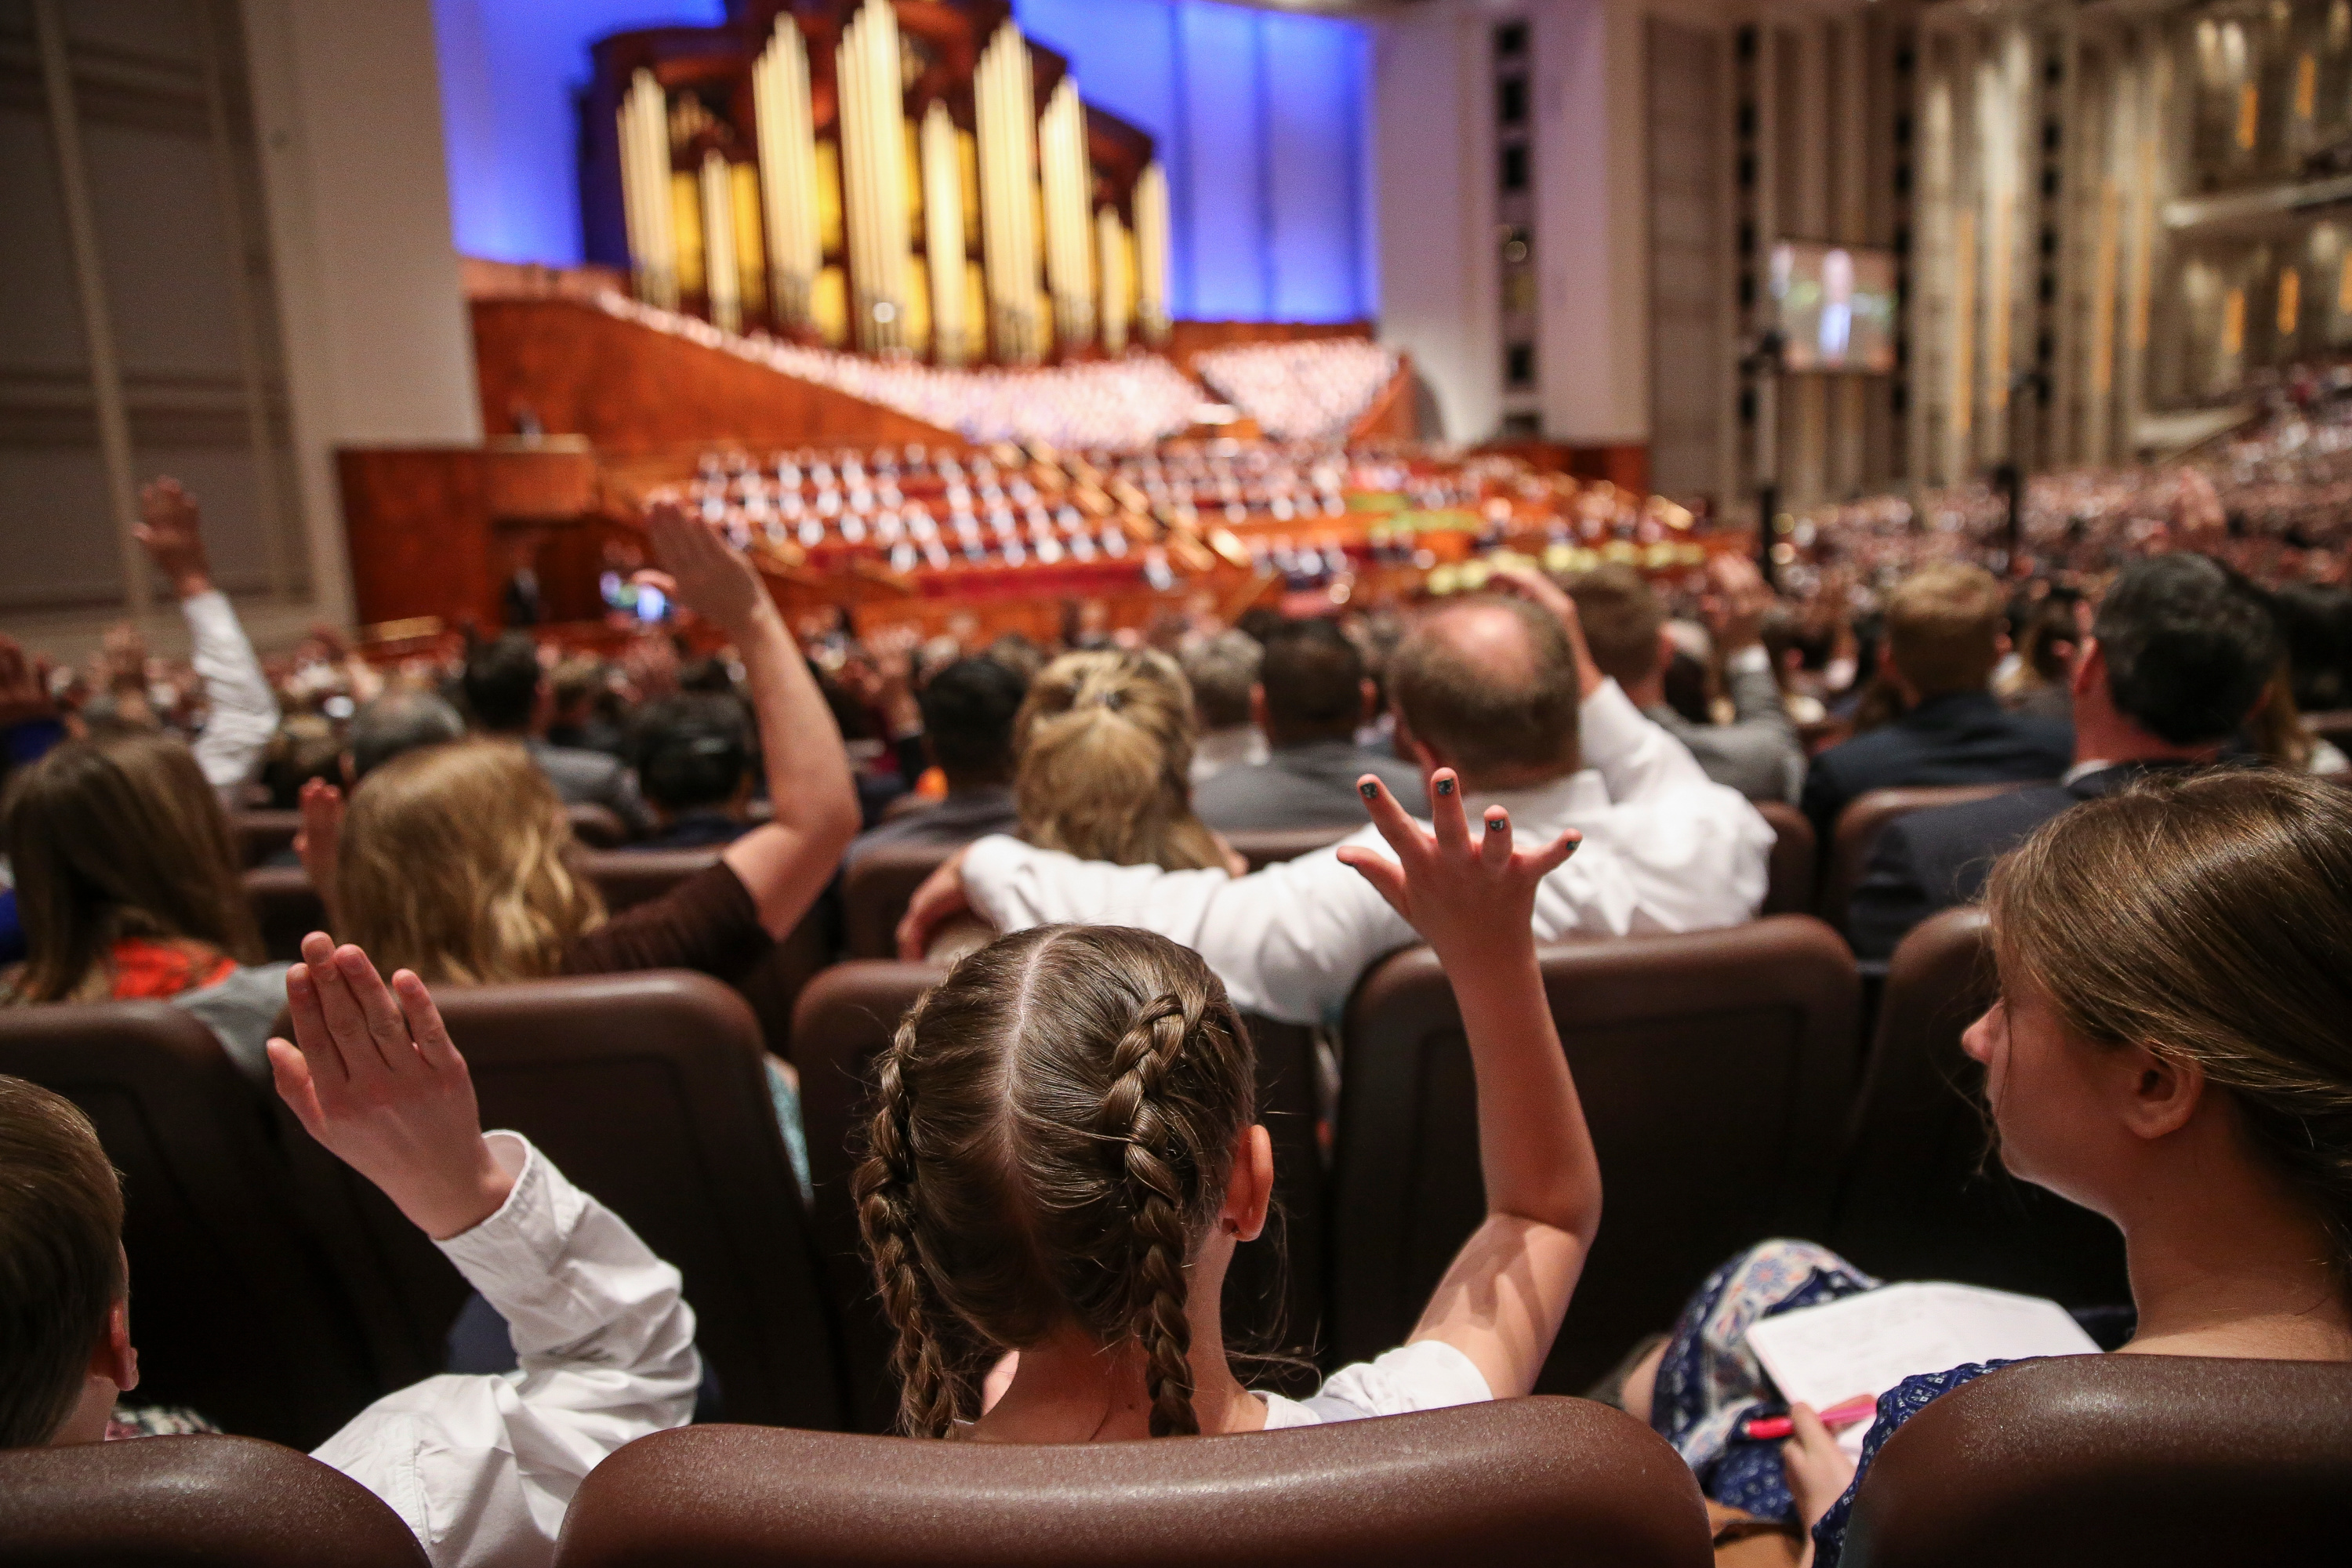 Young conferencegoers raise their hands to sustain church leadership during the Saturday afternoon session of the 188th Annual General Conference of the Church at the Conference Center in Salt Lake City on March 31, 2018.